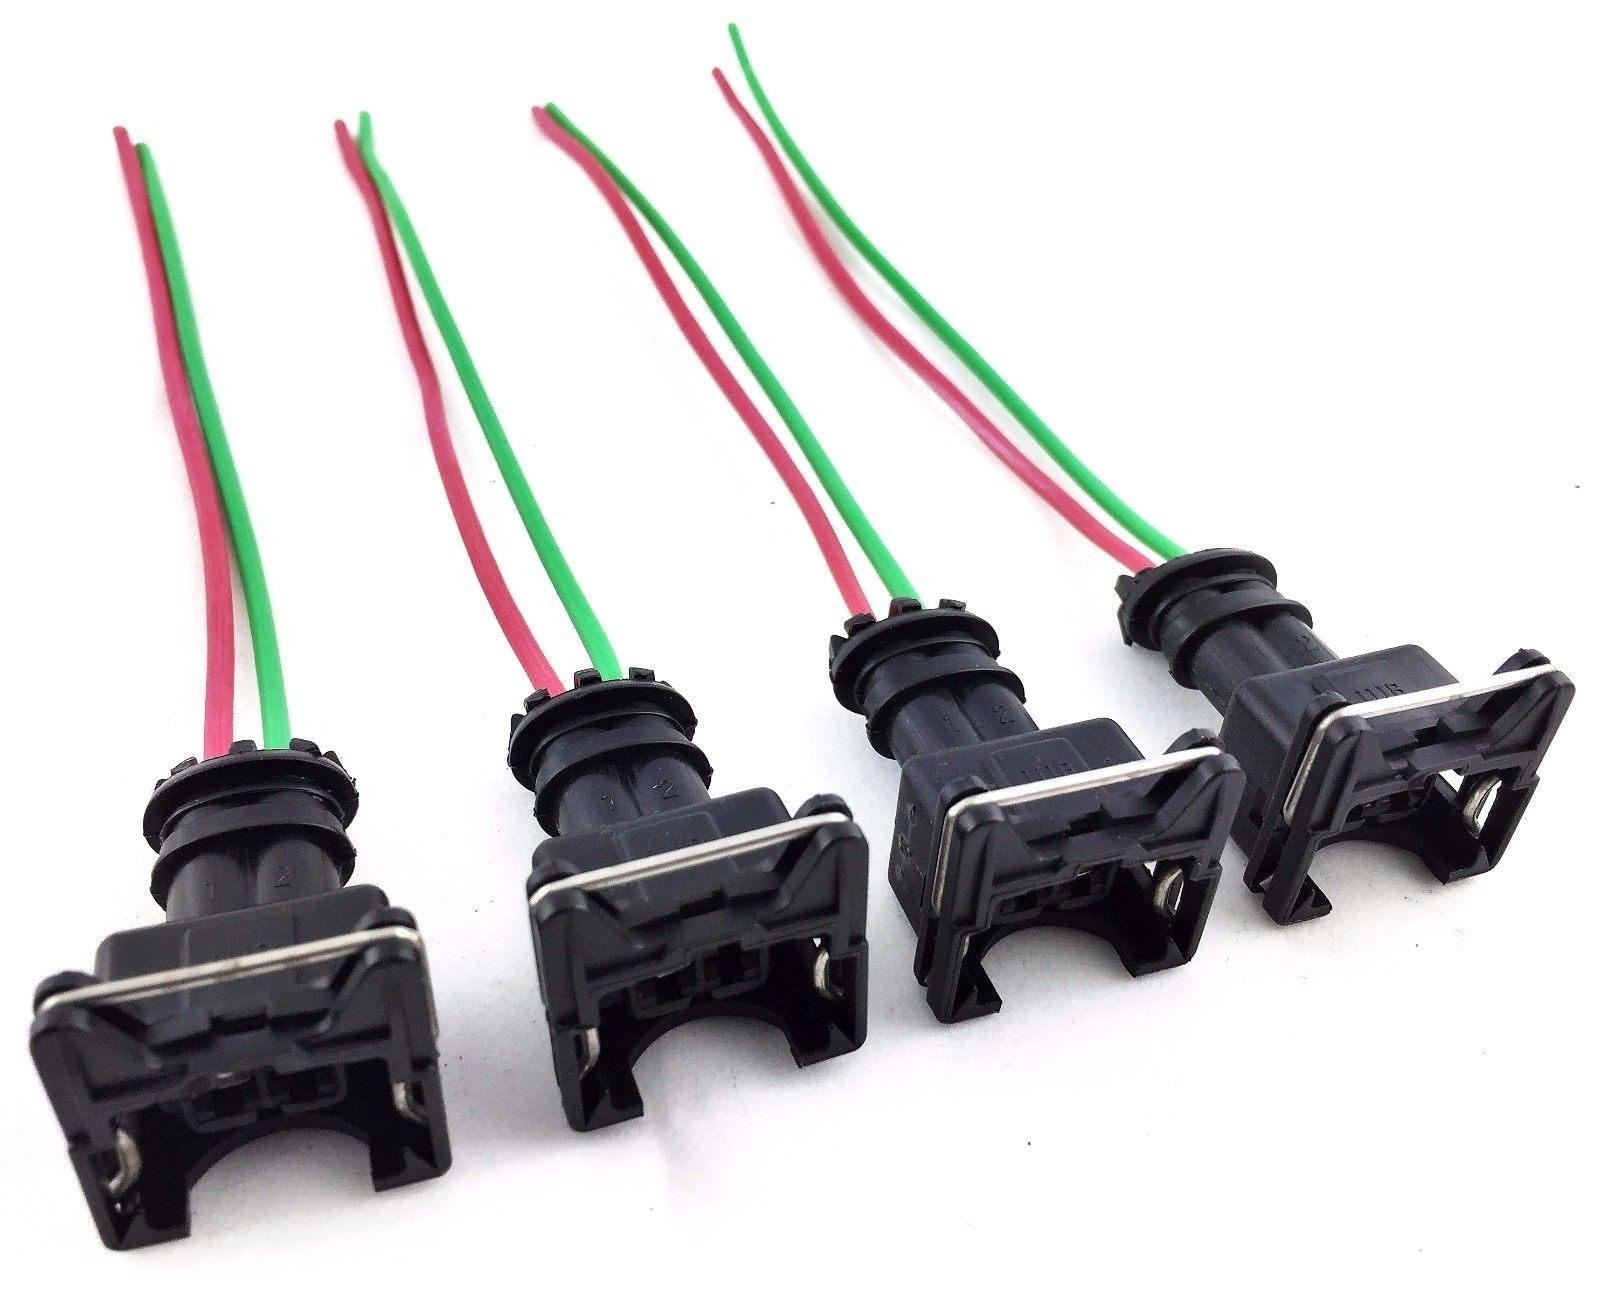 hight resolution of 4 rc fuel injector connector wiring harness plug clips bosch ev1 pigtail obd1 gm